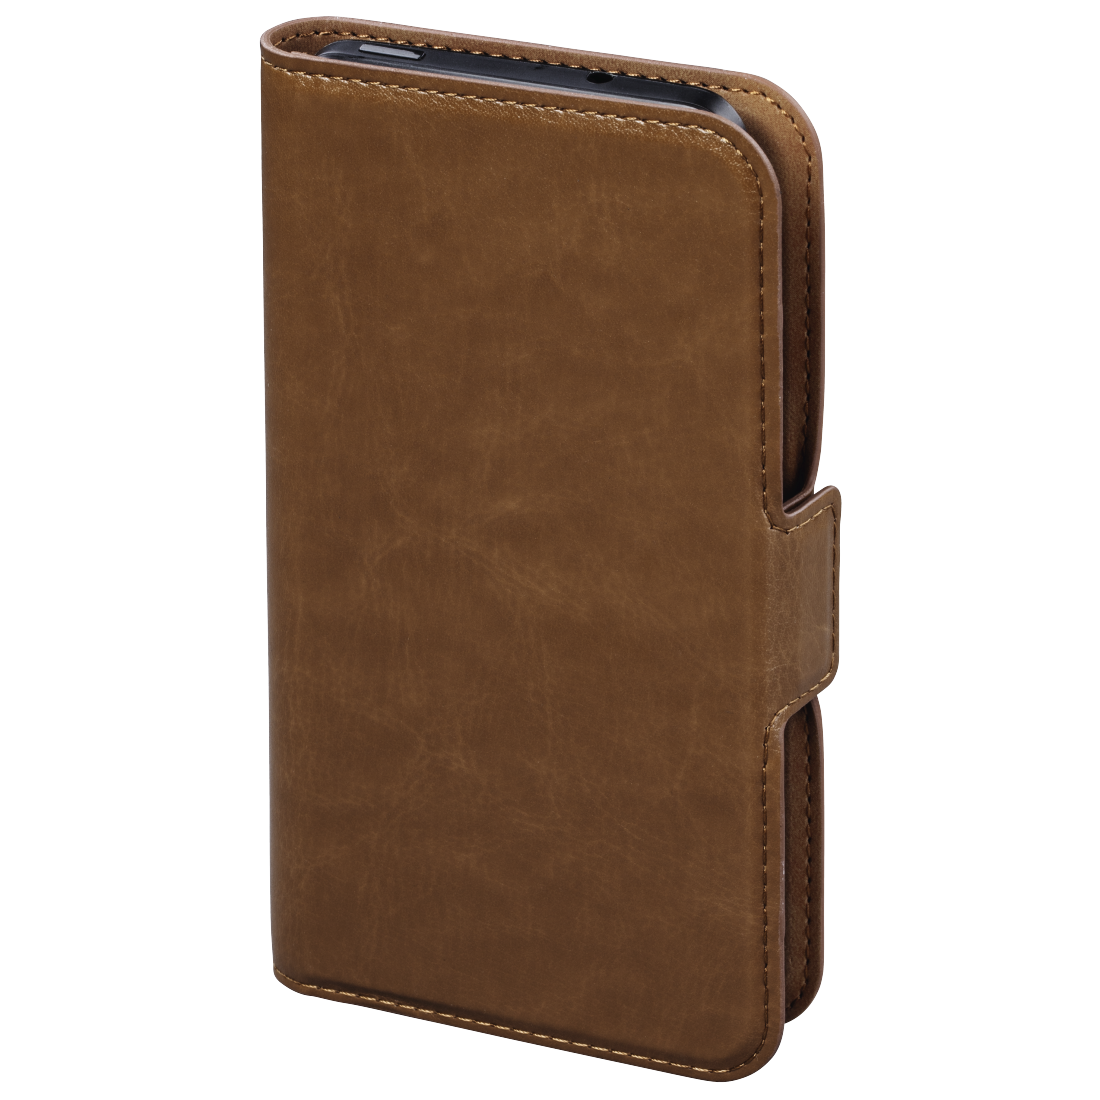 abx2 High-Res Image 2 - Hama, Smart Move Booklet Case, size XL (4.7 - 5.1), brown